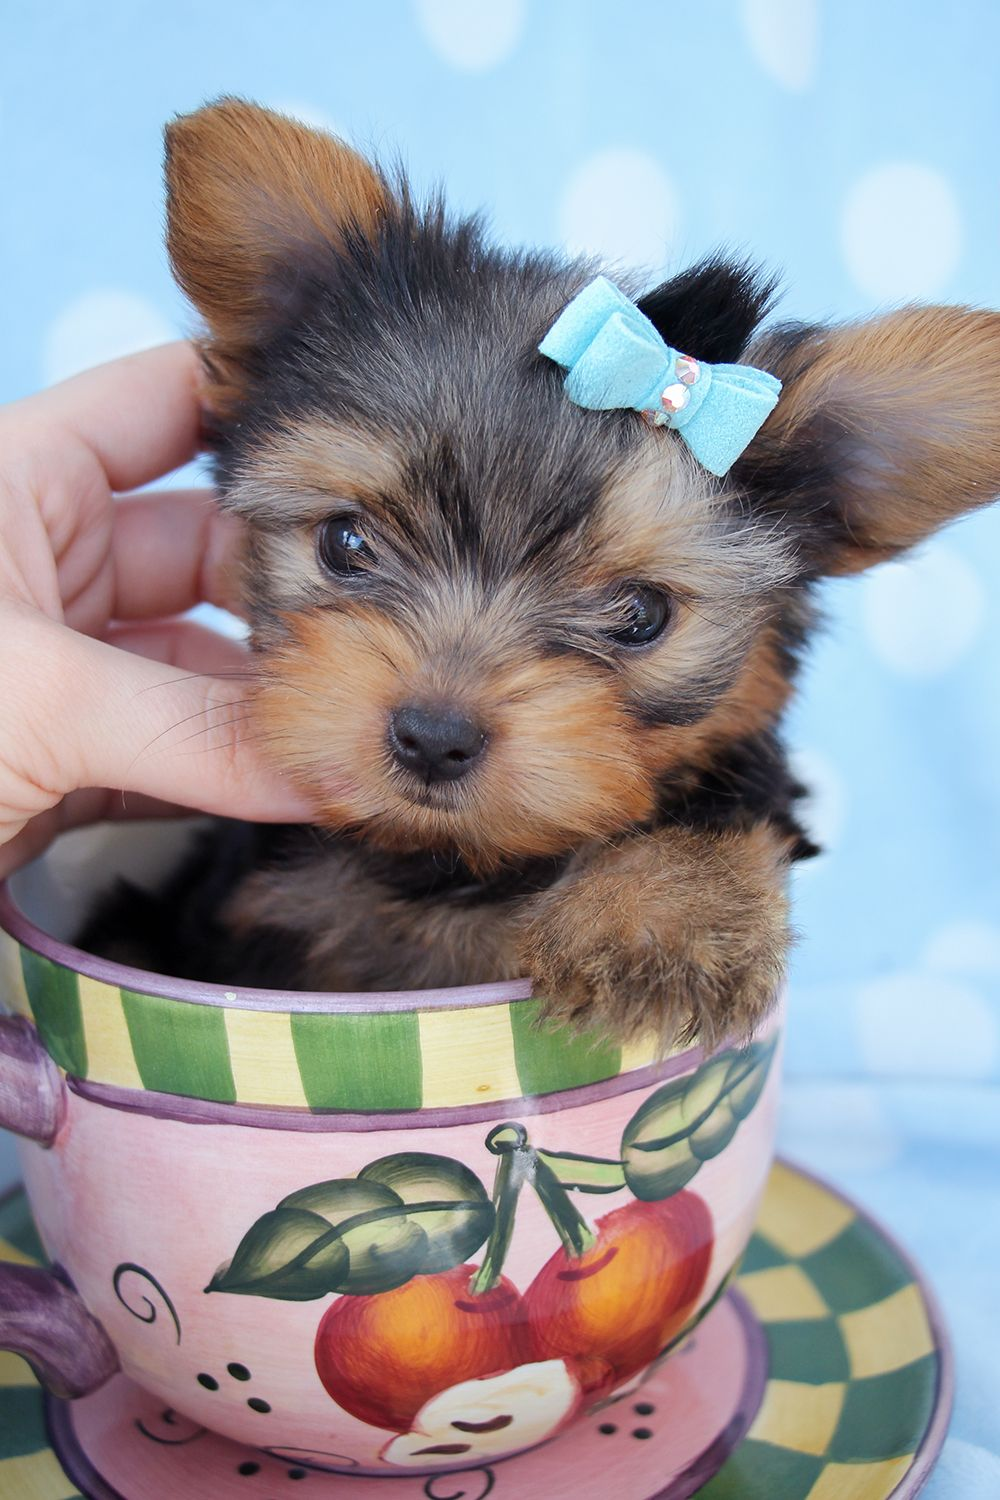 Yorkie Puppies For Sale in South Florida Teacup puppies